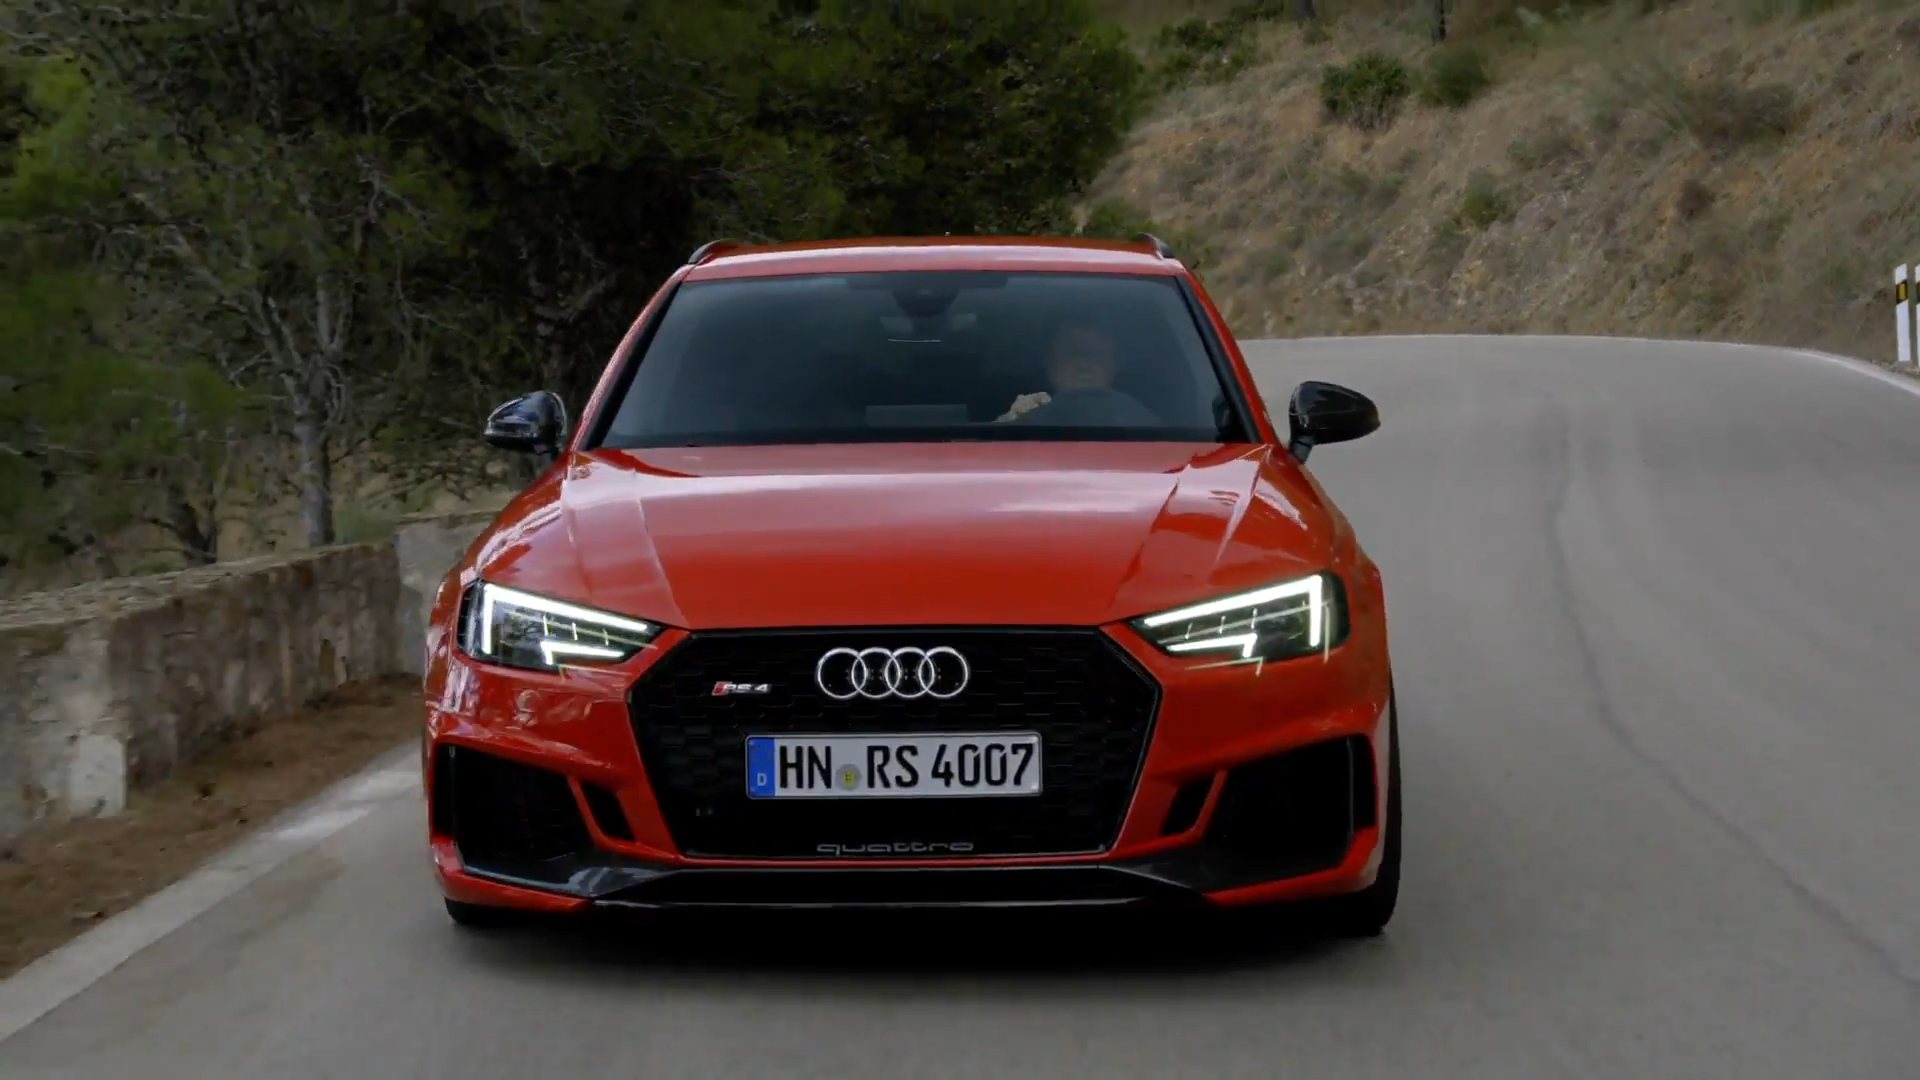 Audi RS 4 Misano Red Driving Video